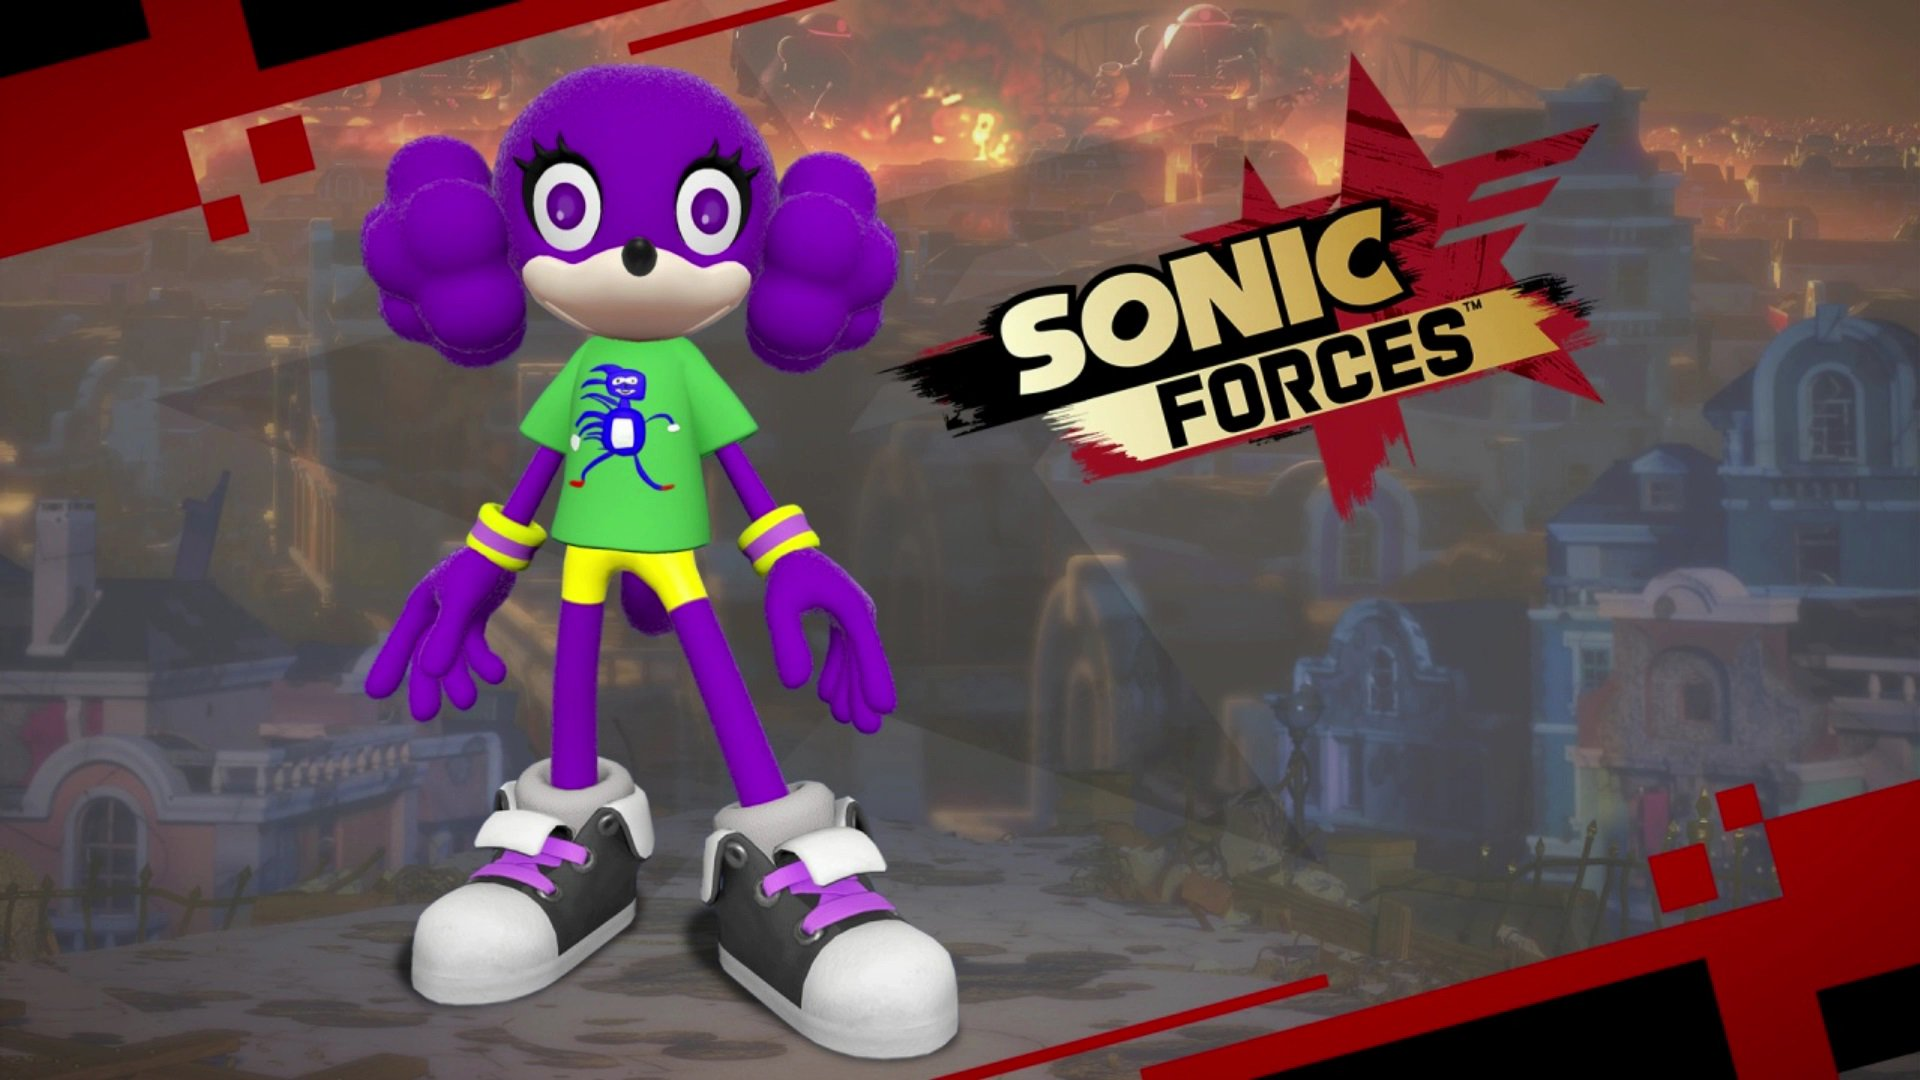 Get ready to go fst. The 'Sanic T-shirt' is now available for free download in Sonic Forces! (Yes, it's real.) https://t.co/OzIXyVwgCf